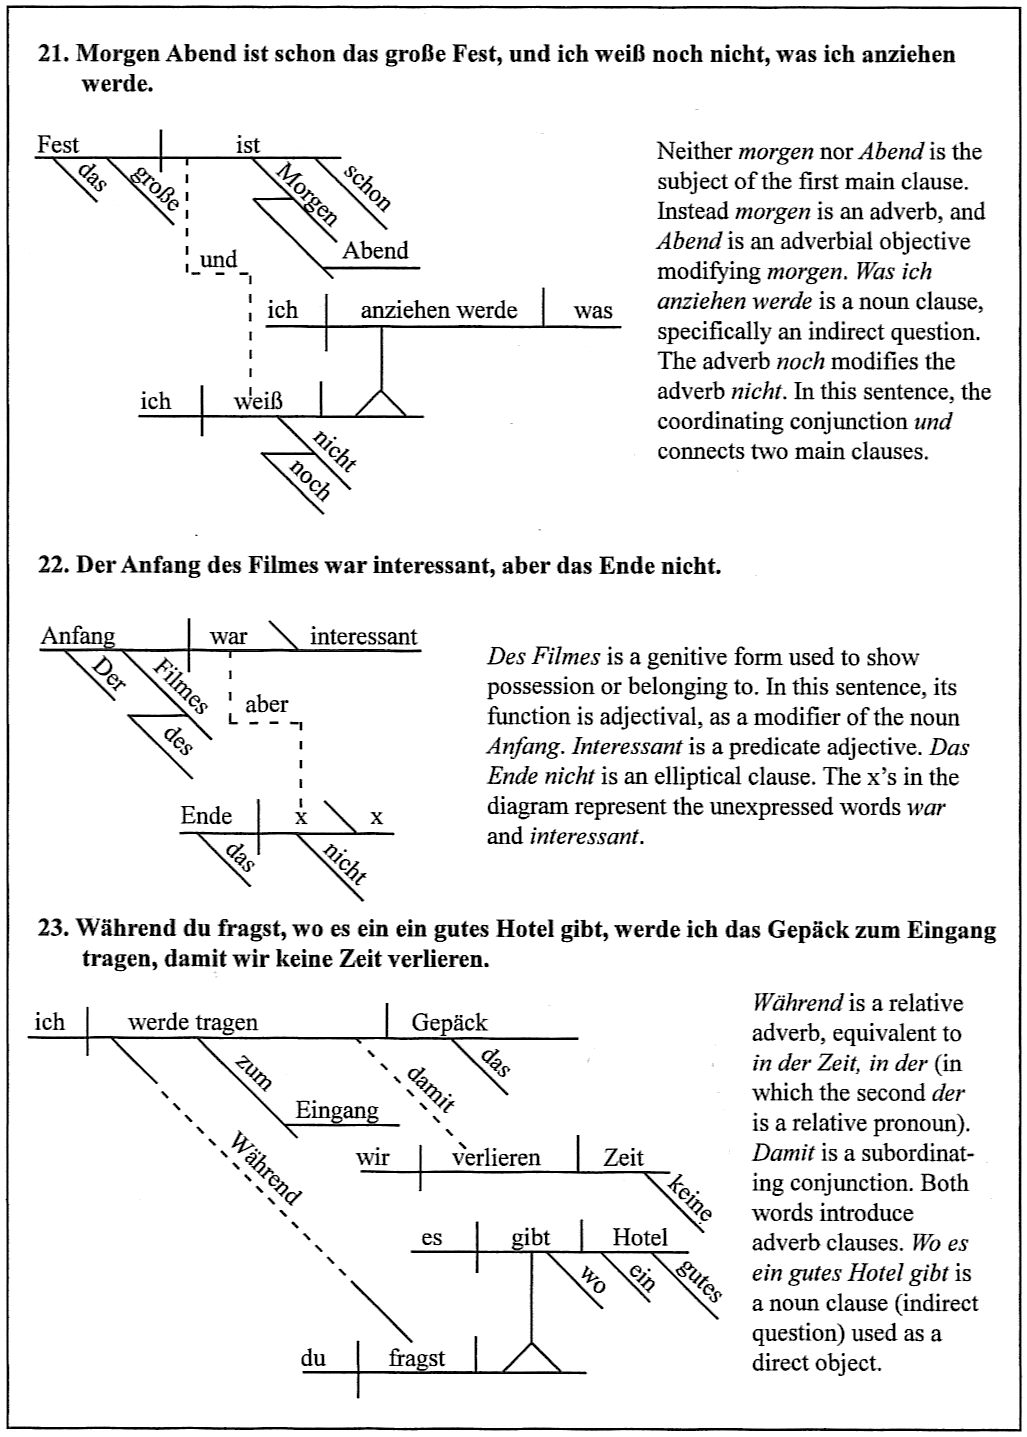 Sentence diagramming sentence diagramming german diagrams by eugene r moutoux ccuart Gallery